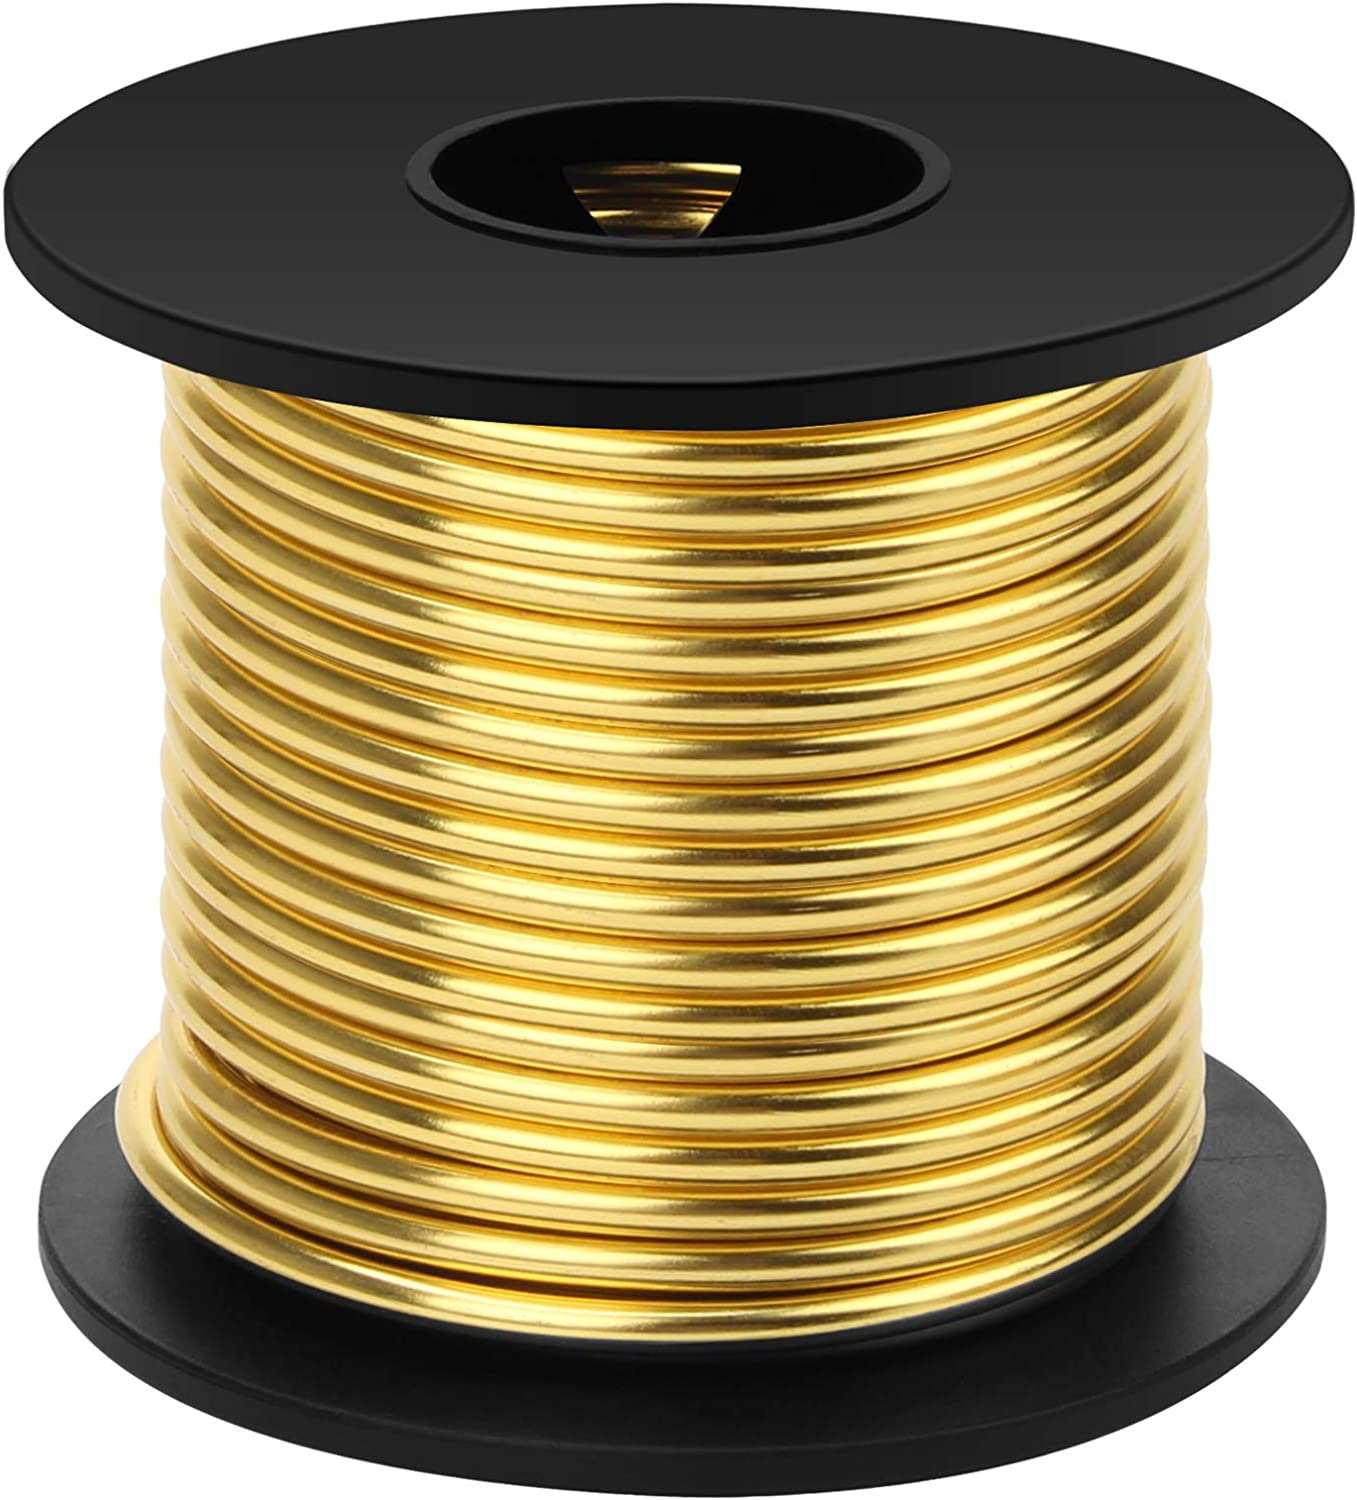 Gold, 1 mm x 23 m Aluminum Craft Wire,1mm 2mm 3mm Gold Aluminum Wire for Crafting Wire Soft DIY Metal Craft Art Wire